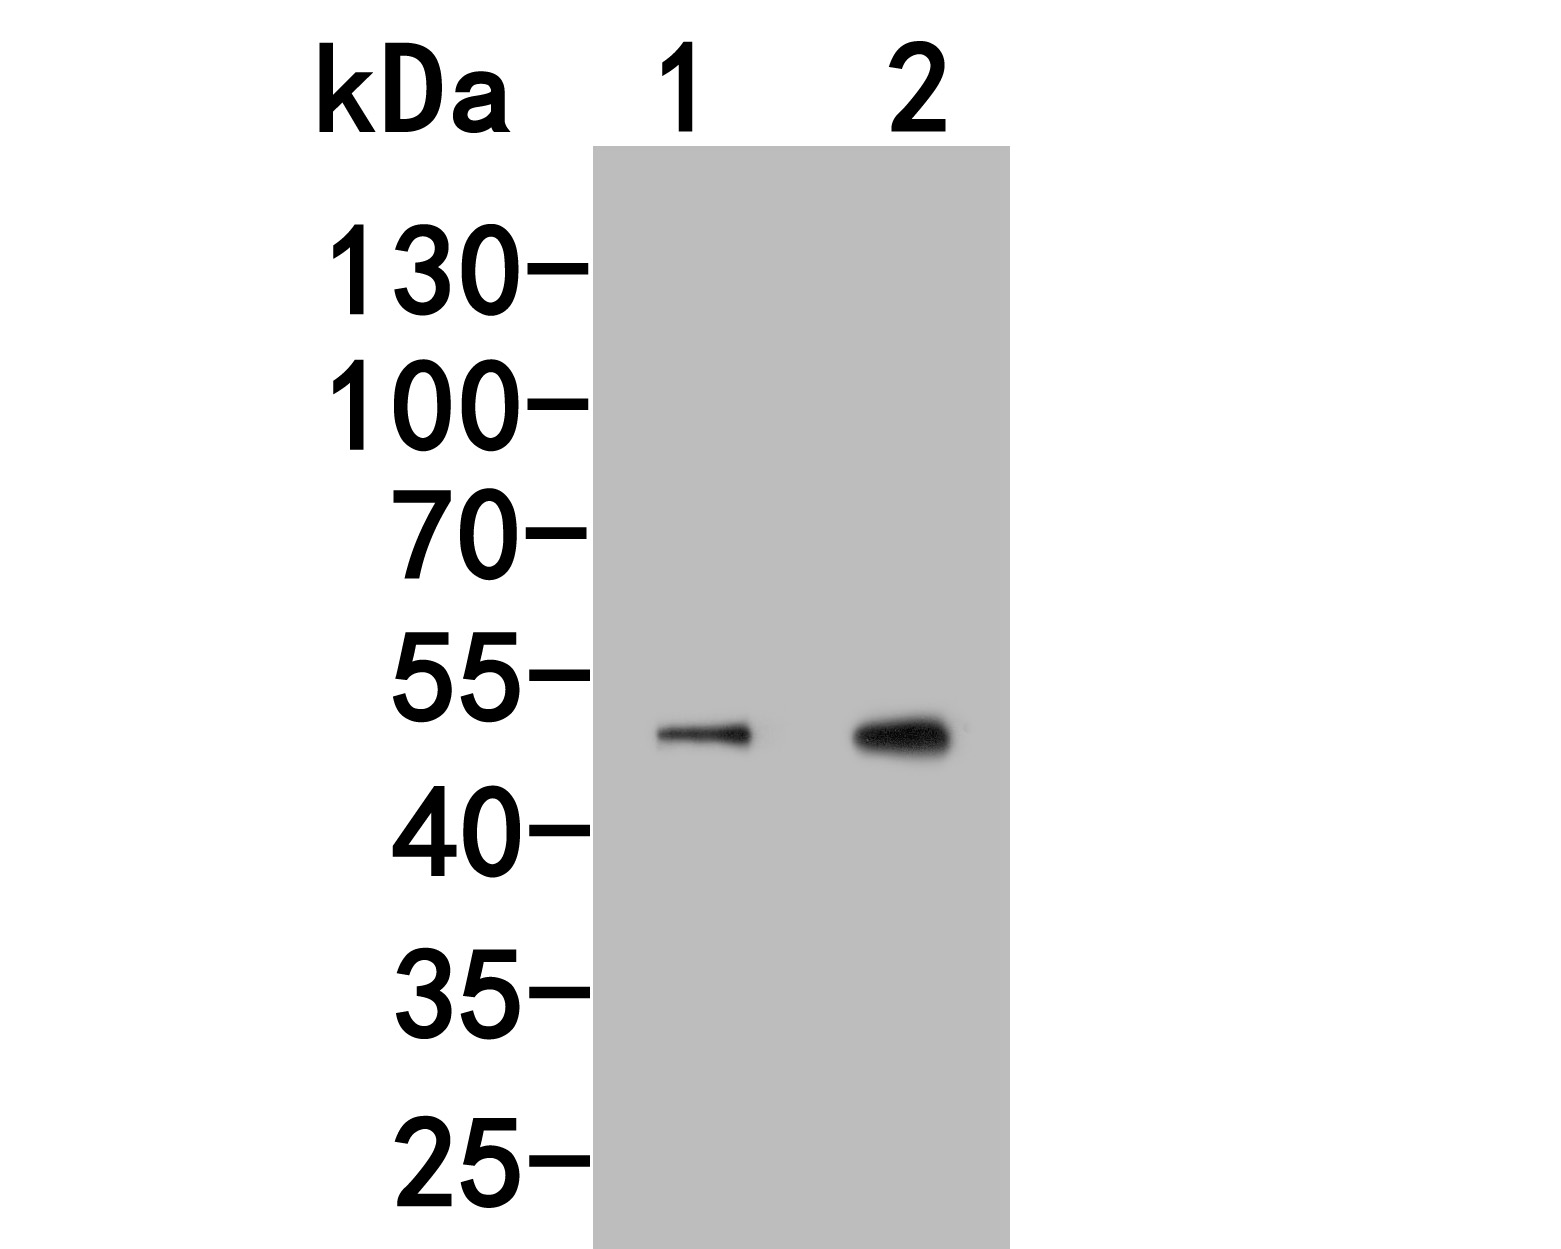 Western blot analysis of FLI1 on different lysates. Proteins were transferred to a PVDF membrane and blocked with 5% BSA in PBS for 1 hour at room temperature. The primary antibody (HA500149, 1/1,000) was used in 5% BSA at room temperature for 2 hours. Goat Anti-Rabbit IgG - HRP Secondary Antibody (HA1001) at 1:200,000 dilution was used for 1 hour at room temperature.<br /> Positive control: <br /> Lane 1: NIH/3T3 cell lysate<br /> Lane 2: Jurkat cell lysate